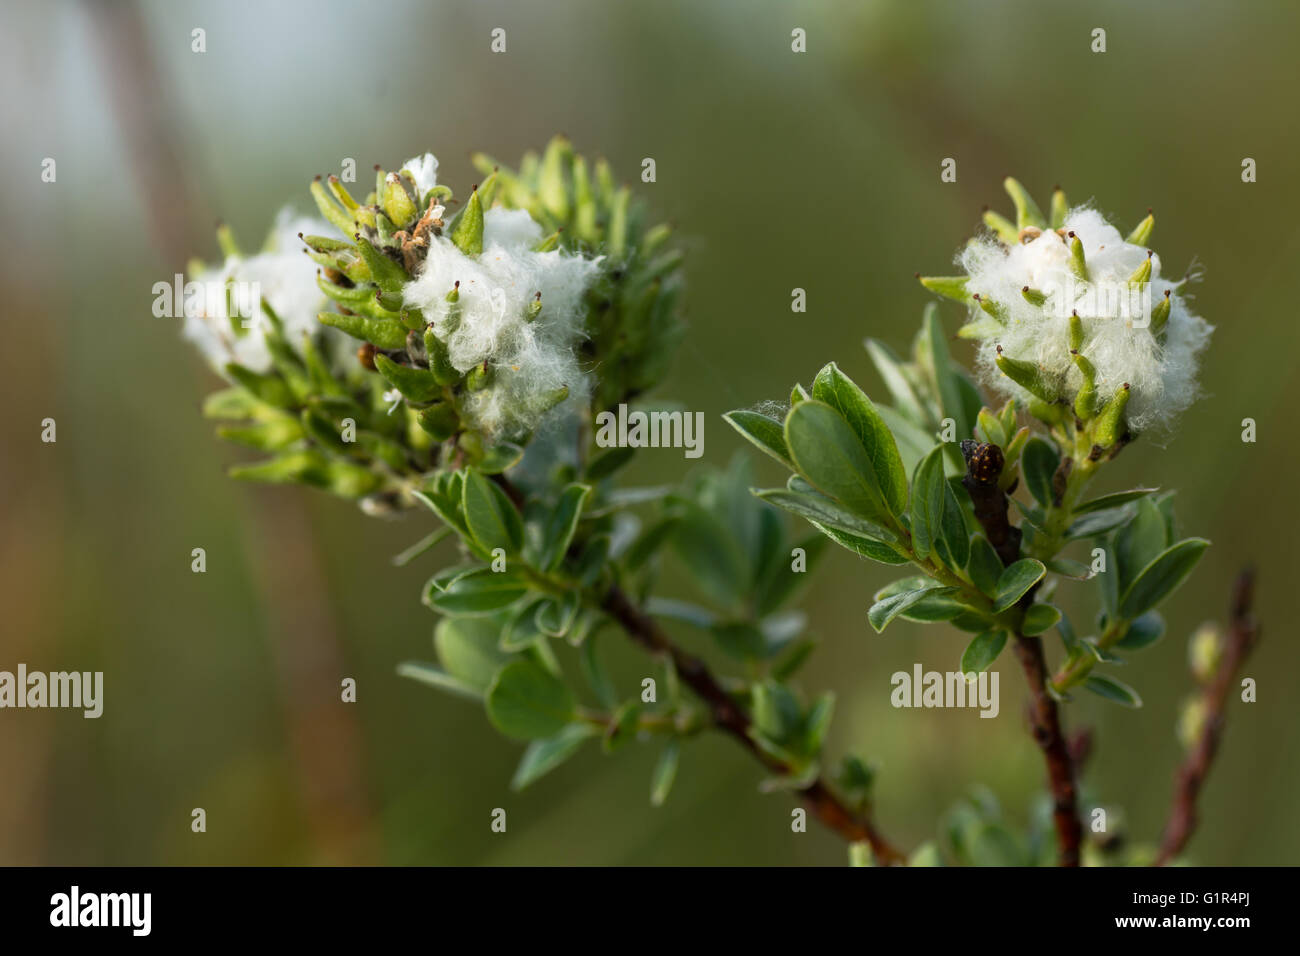 Creeping willow (Salix repens) female catkins. Downy fluff around finished flowers on low growing shrub  in family - Stock Image